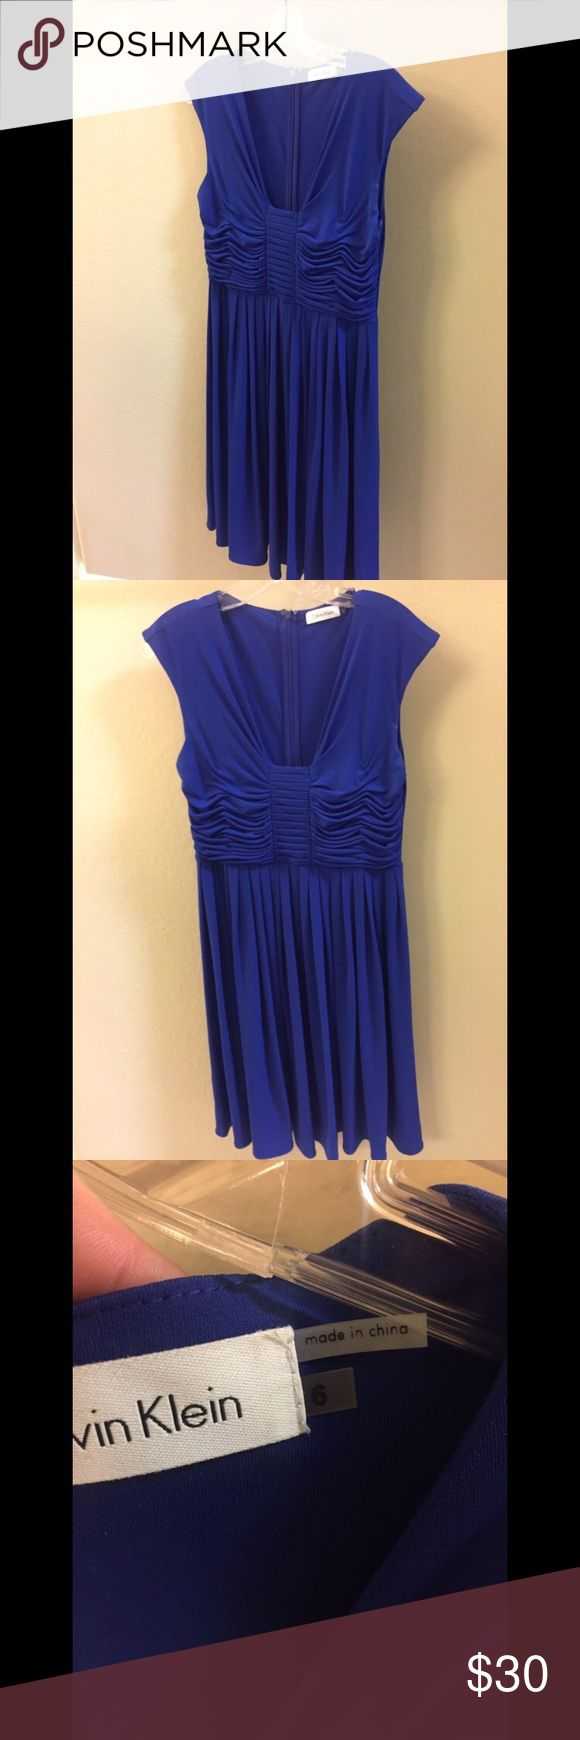 Royal Blue Calvin Klein dress Perfect for summer! Calvin Klein Dresses Midi